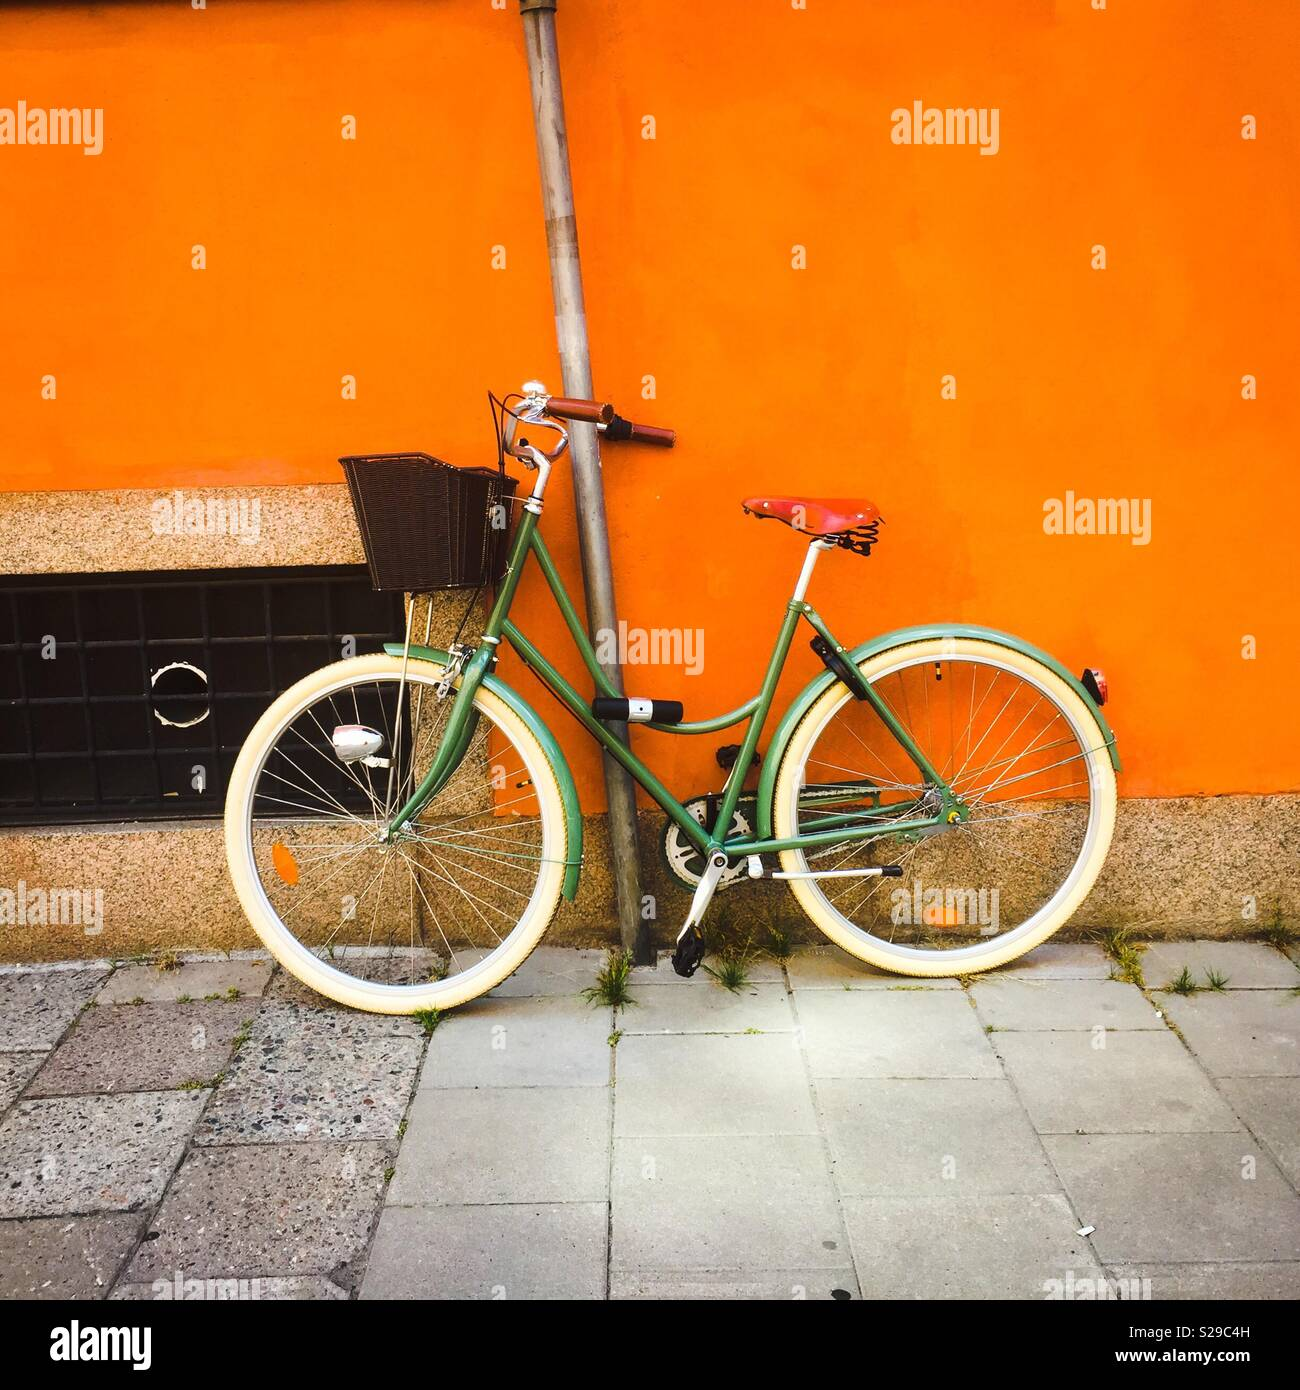 Green bicycle leaning against orange wall - Stock Image